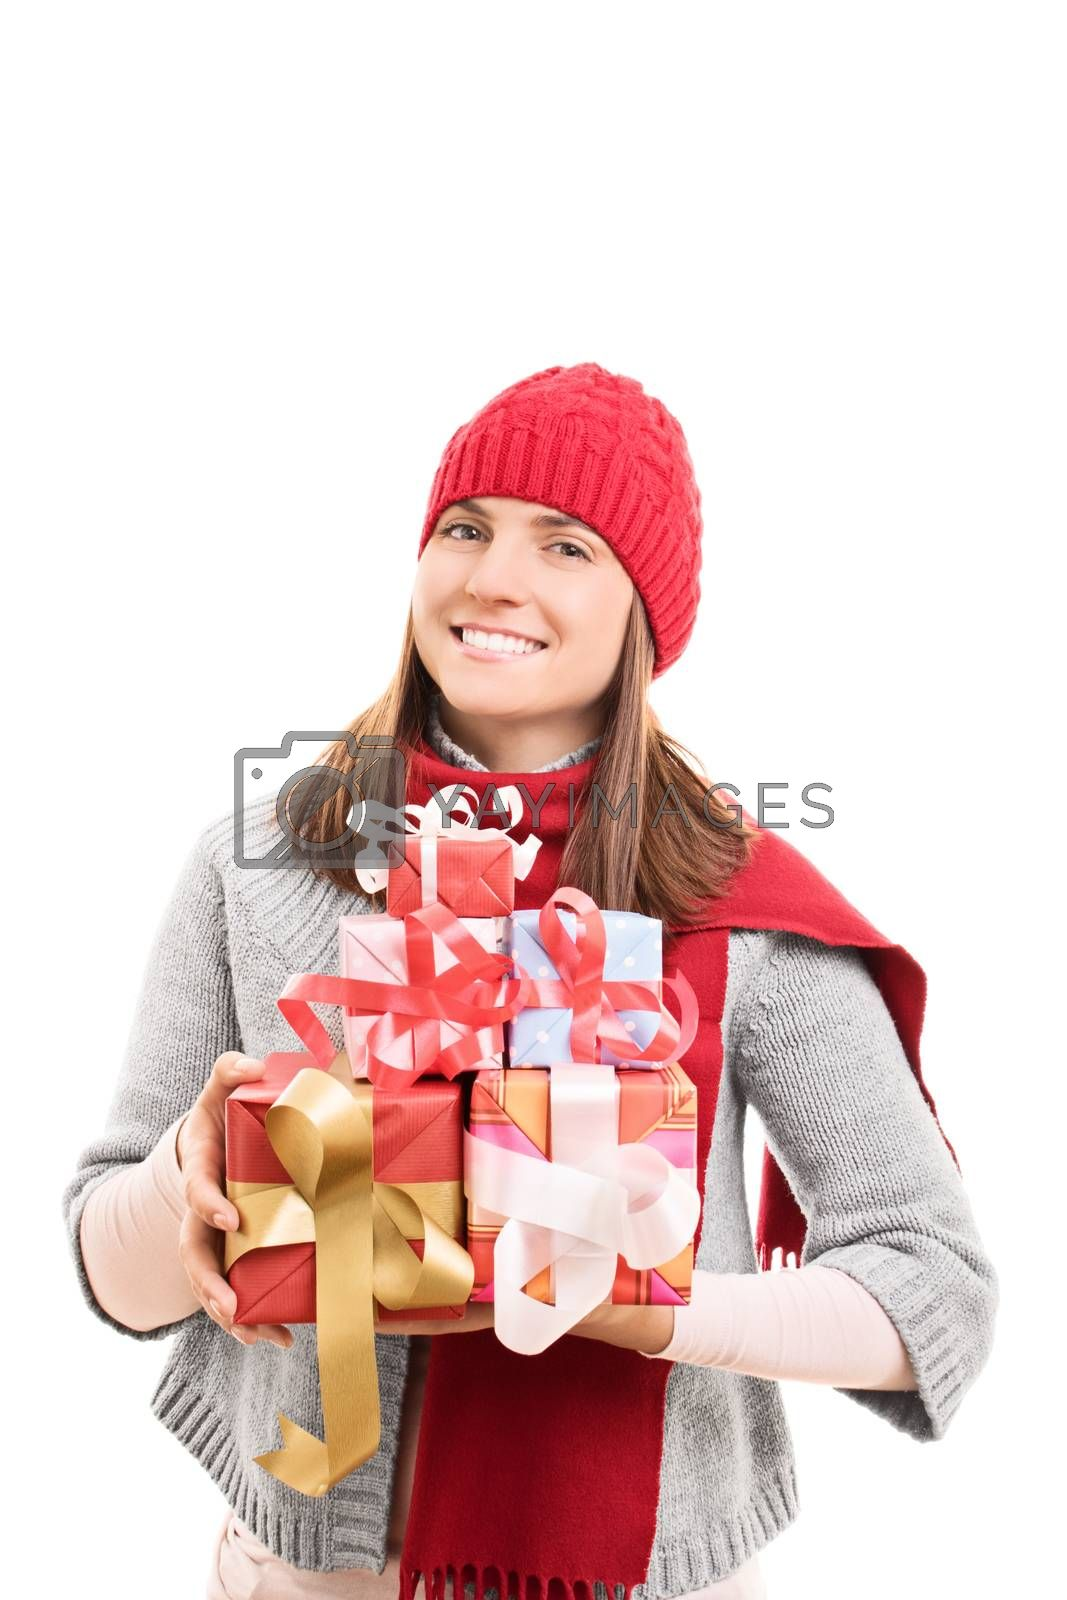 My Christmas shopping is done. Beautiful young woman in winter clothes holding wrapped presents, isolated on white background.